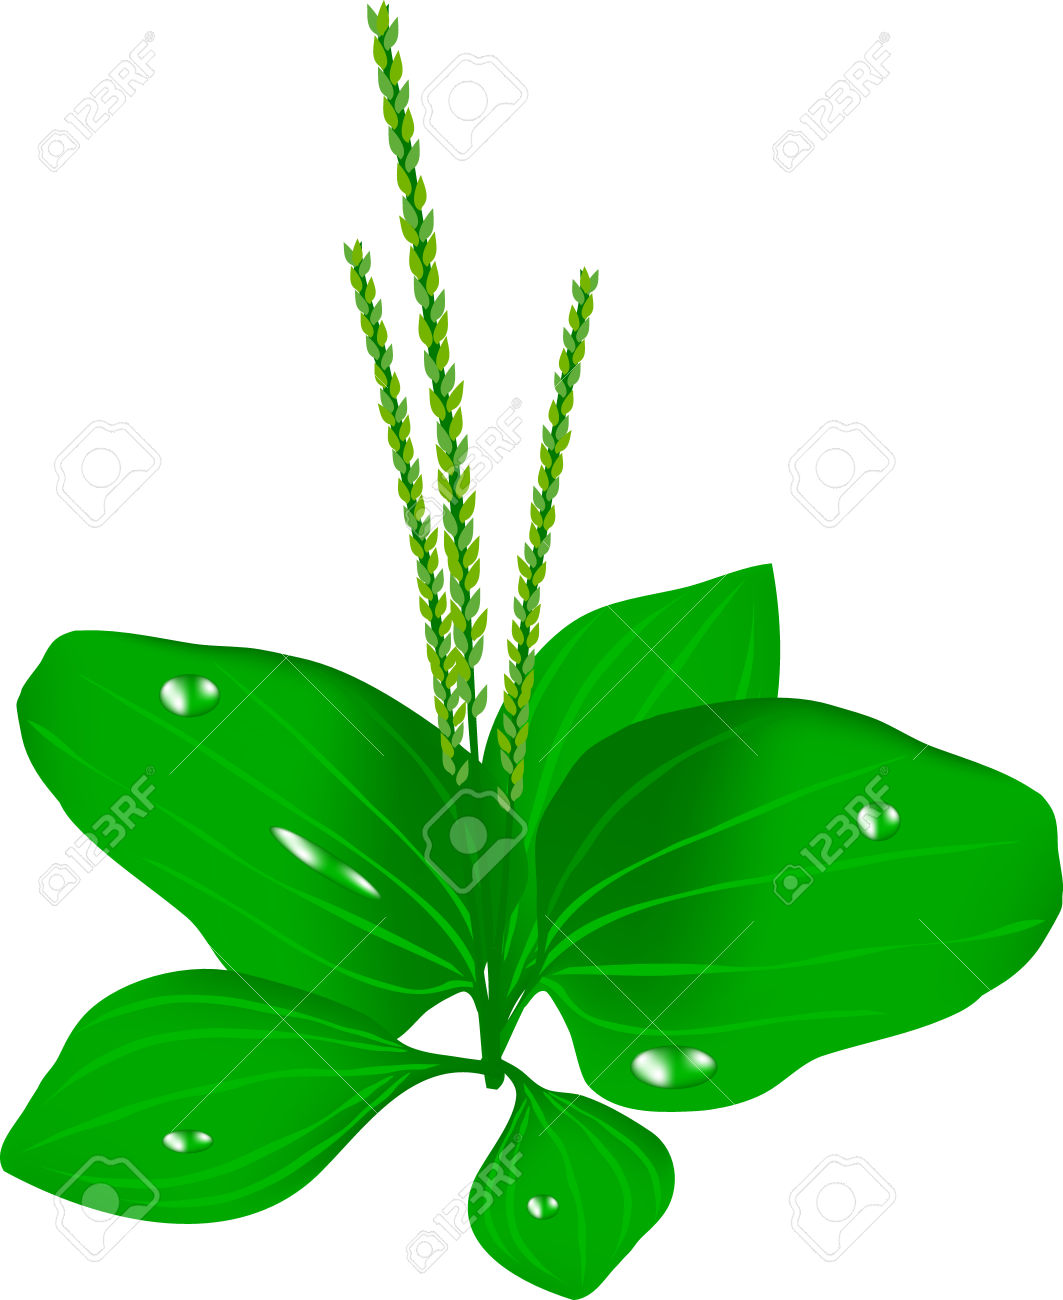 Great Plantain, Plantain Green, A Herb, A Weed Garden, A Greens.